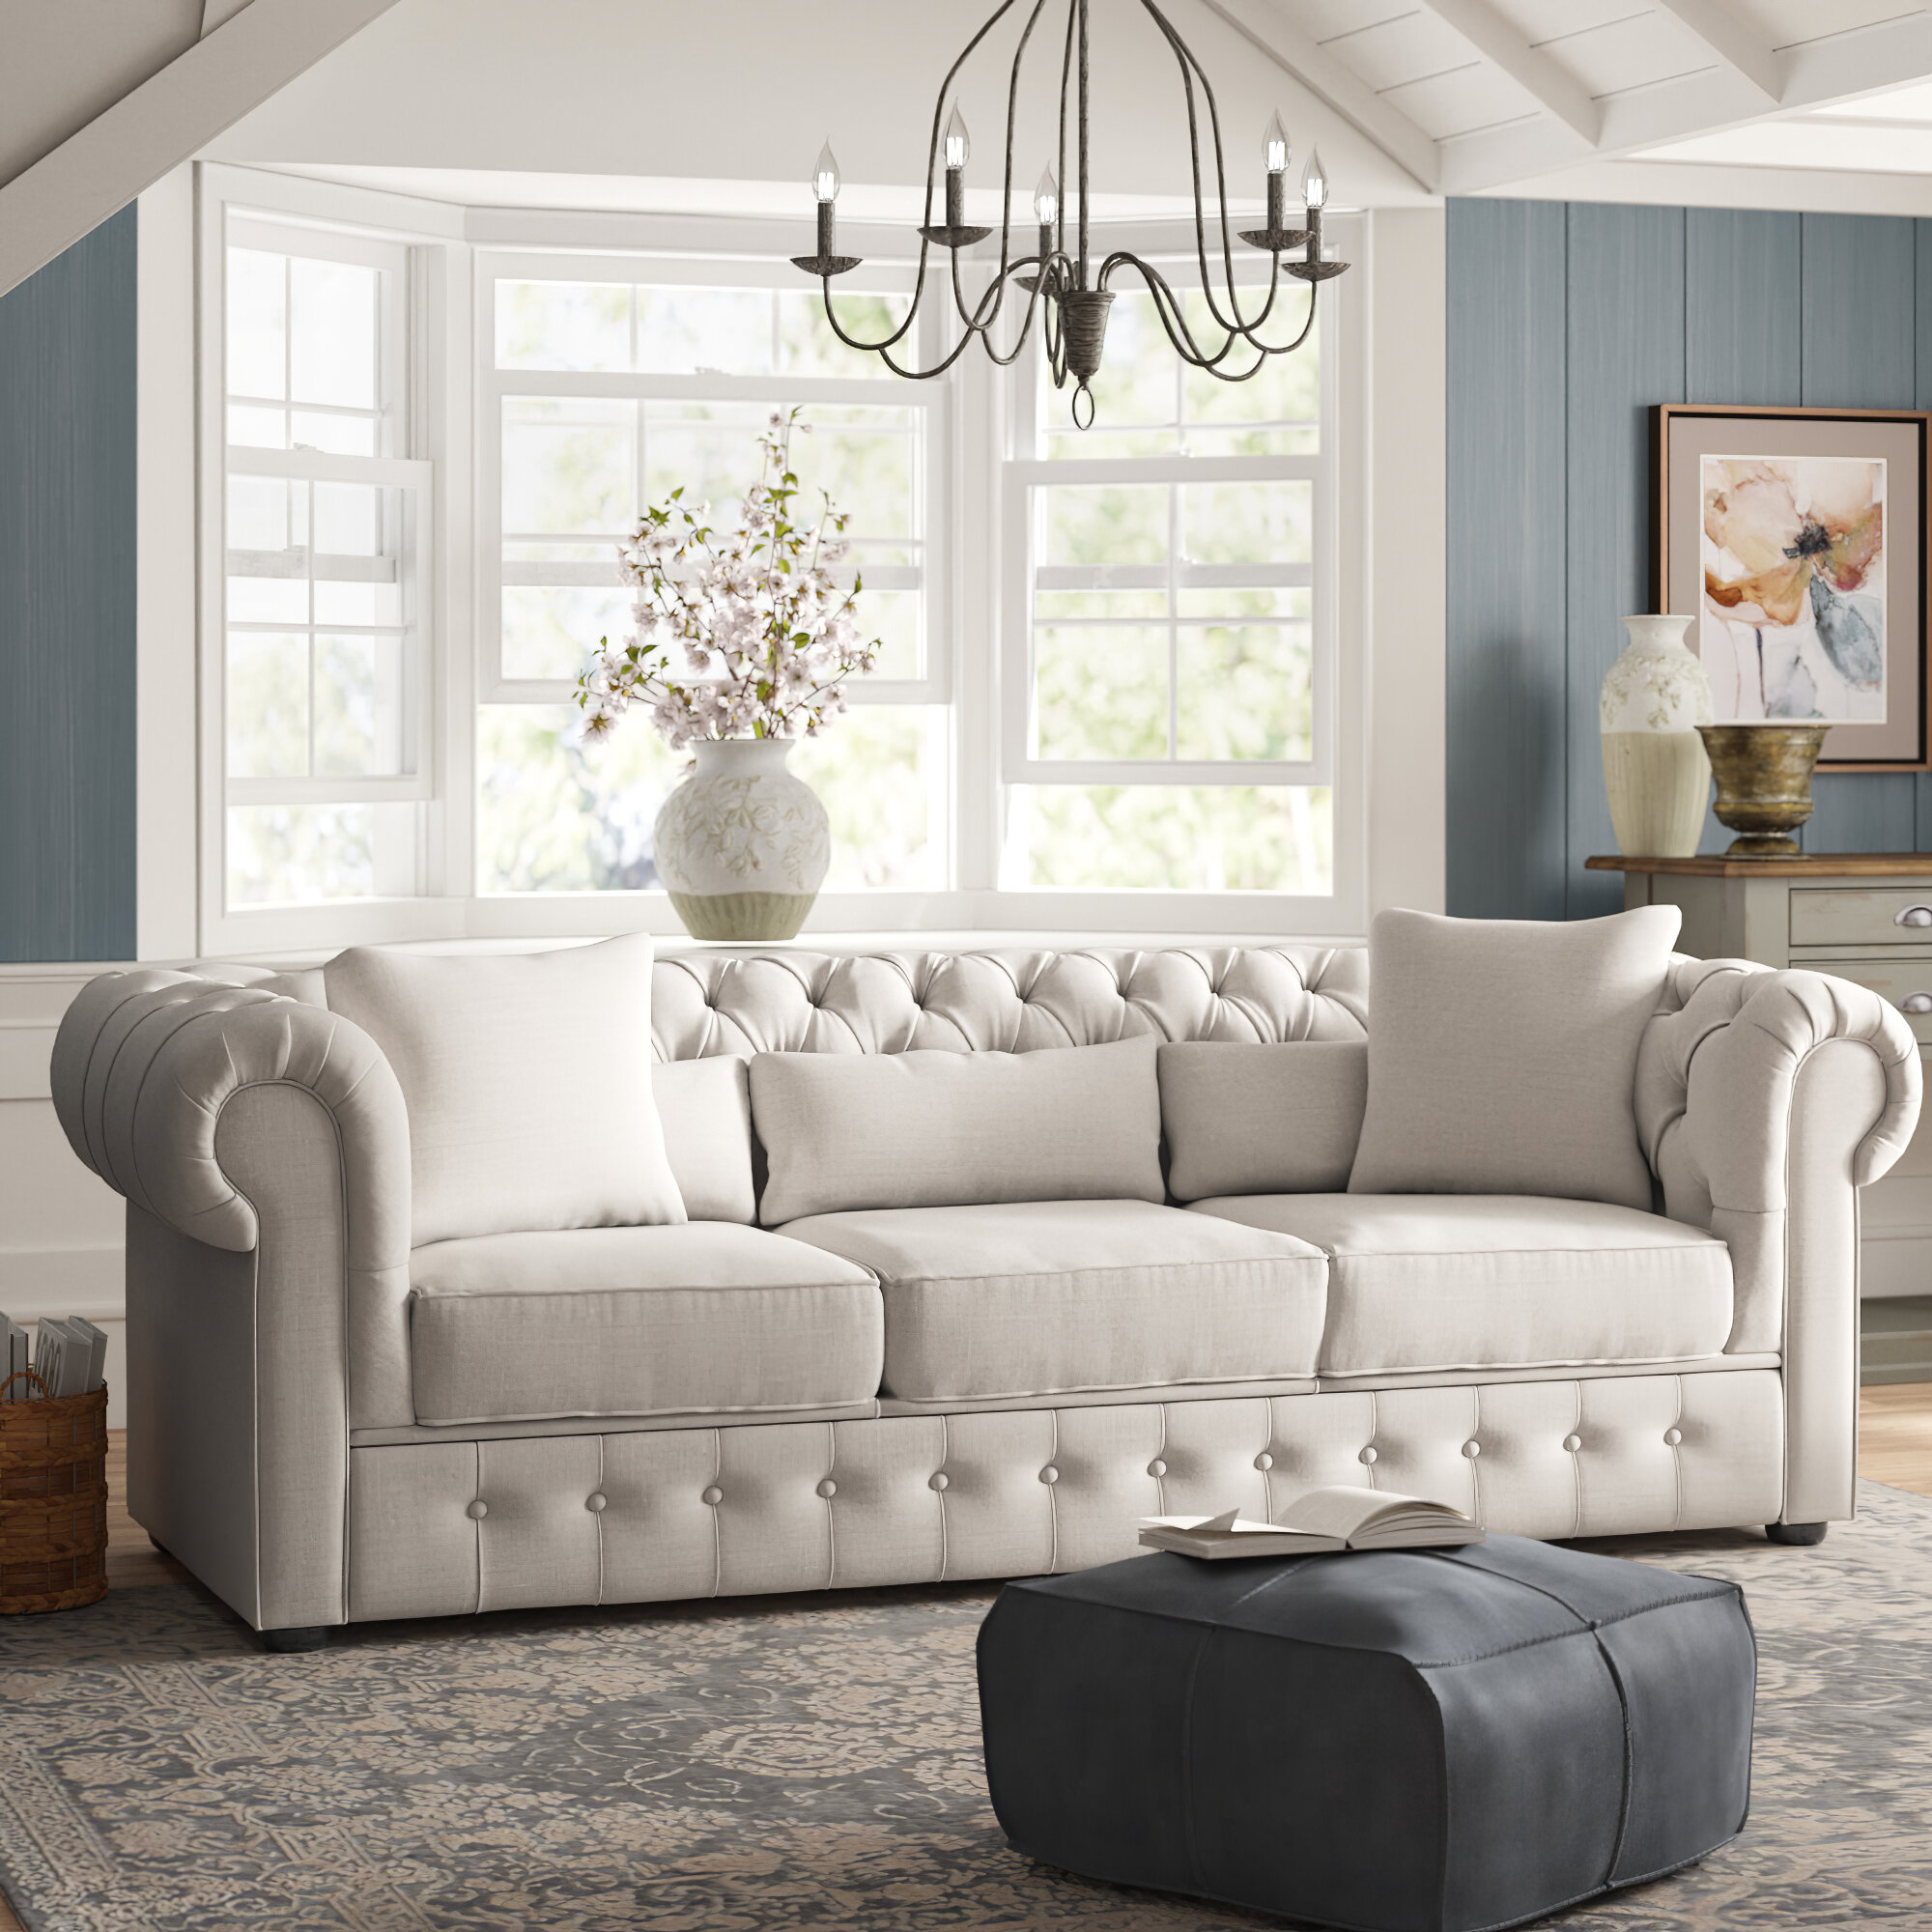 Pleasant Calila Chesterfield Sofa Unemploymentrelief Wooden Chair Designs For Living Room Unemploymentrelieforg